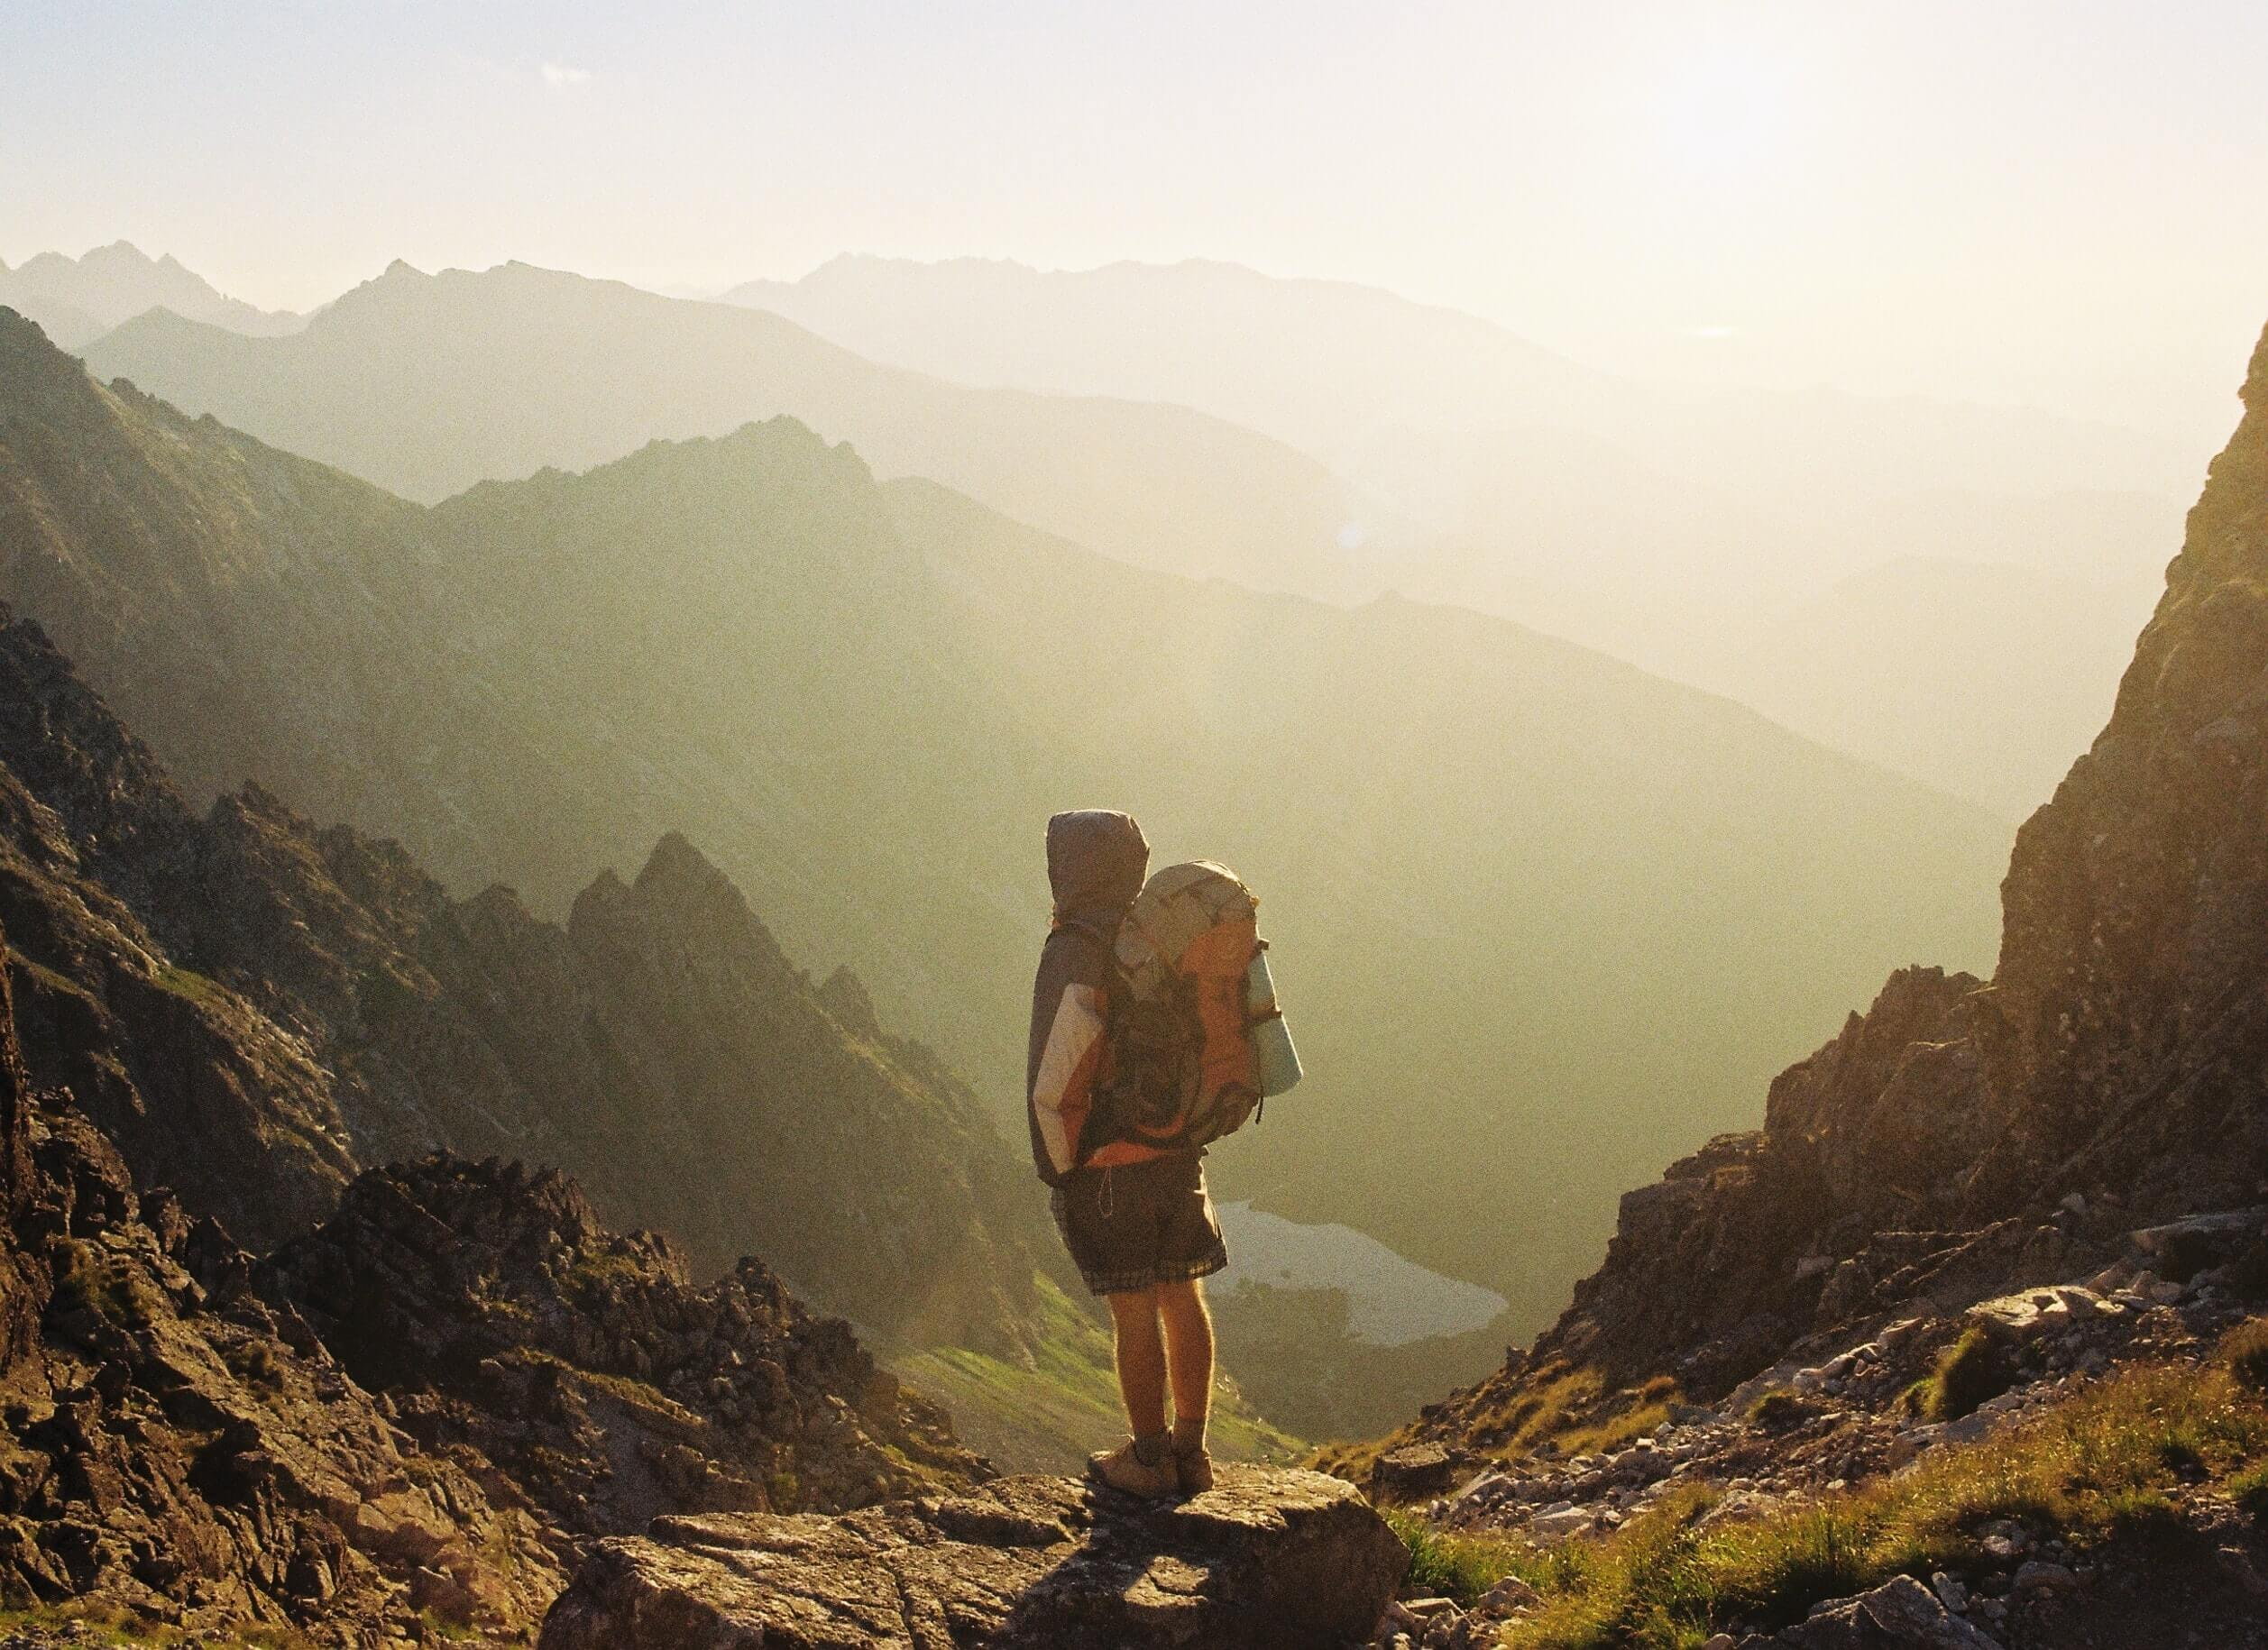 8 of the Best Backpacking Destinations for an Adventure